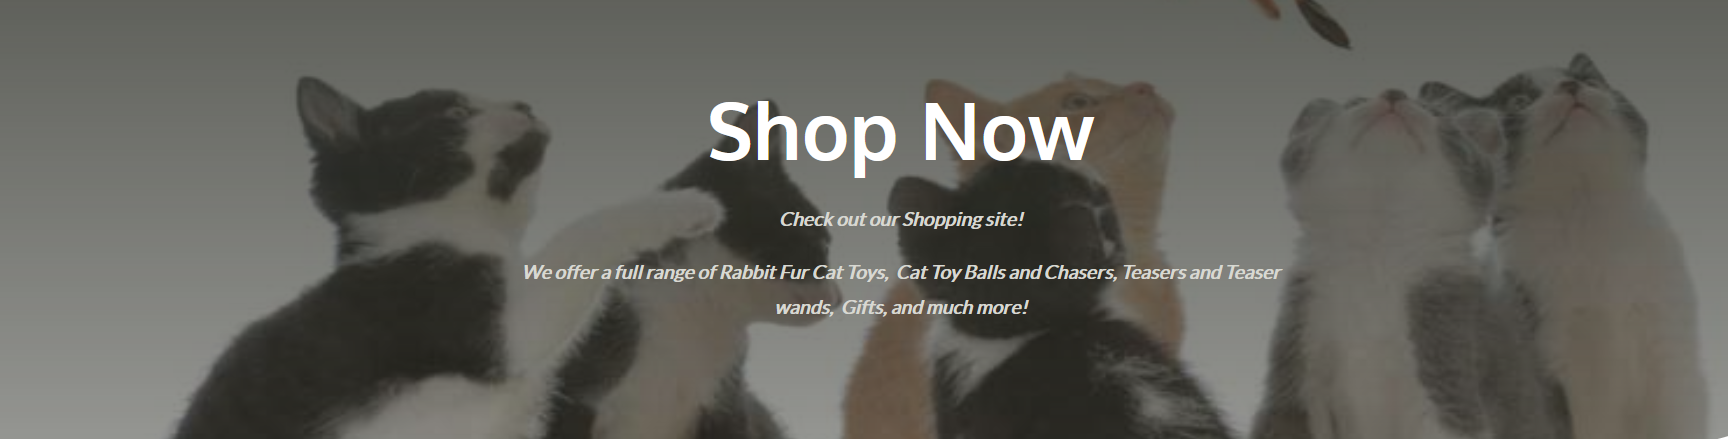 shop-now-pic.png